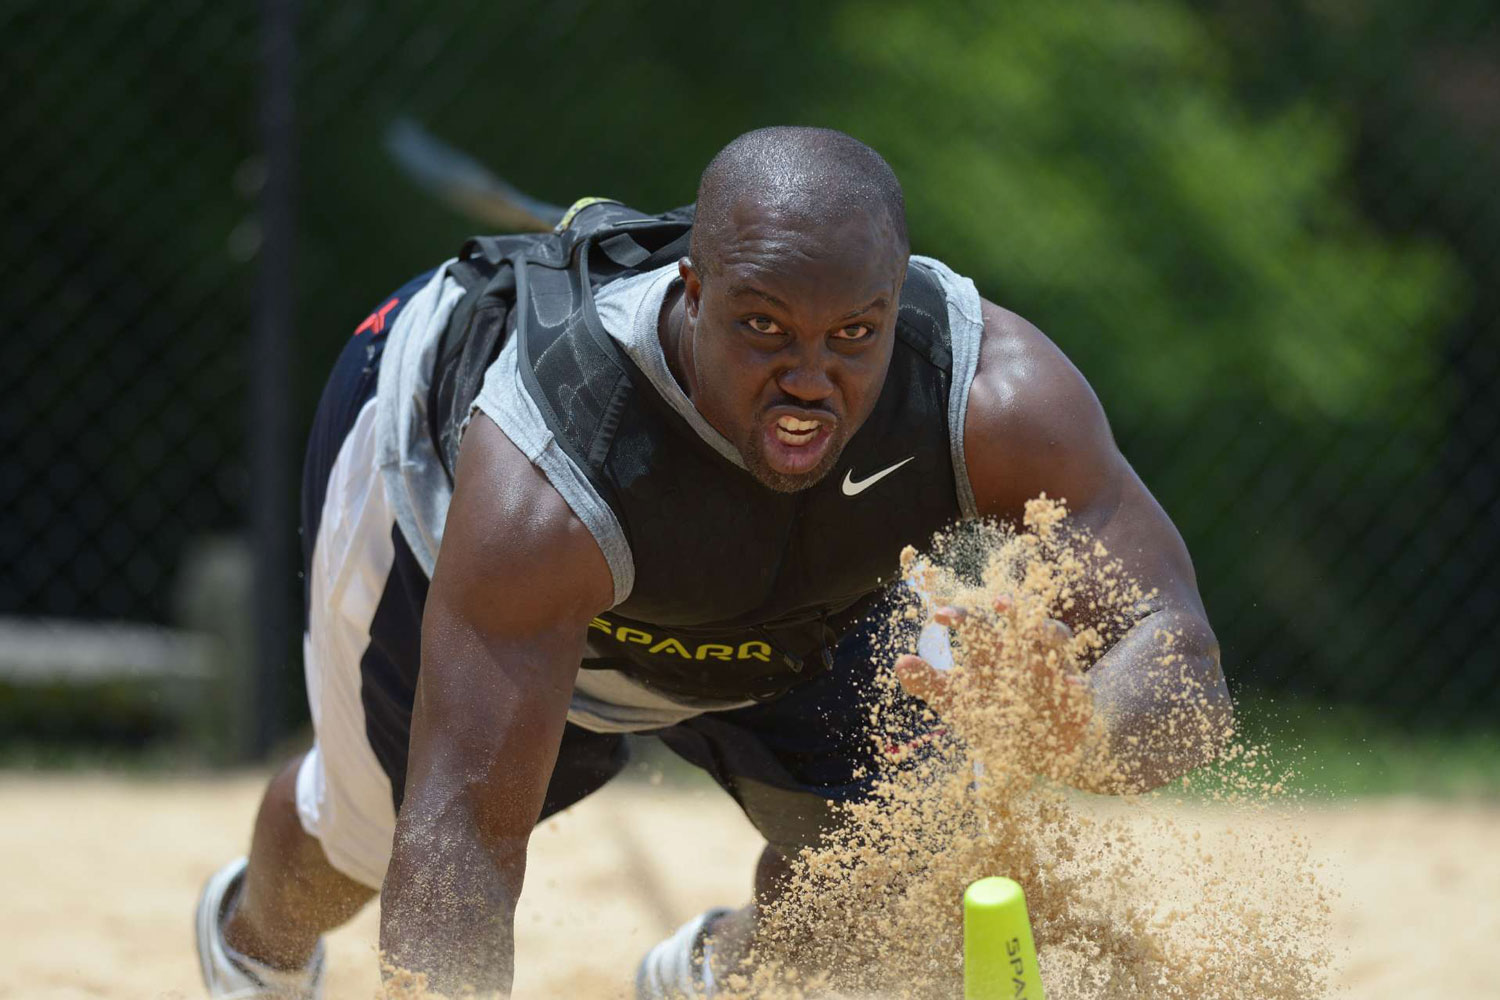 Washington Redskins linebacker London Fletcher performs the bear-crawl, sprinting in sand during a workout in June 2013.